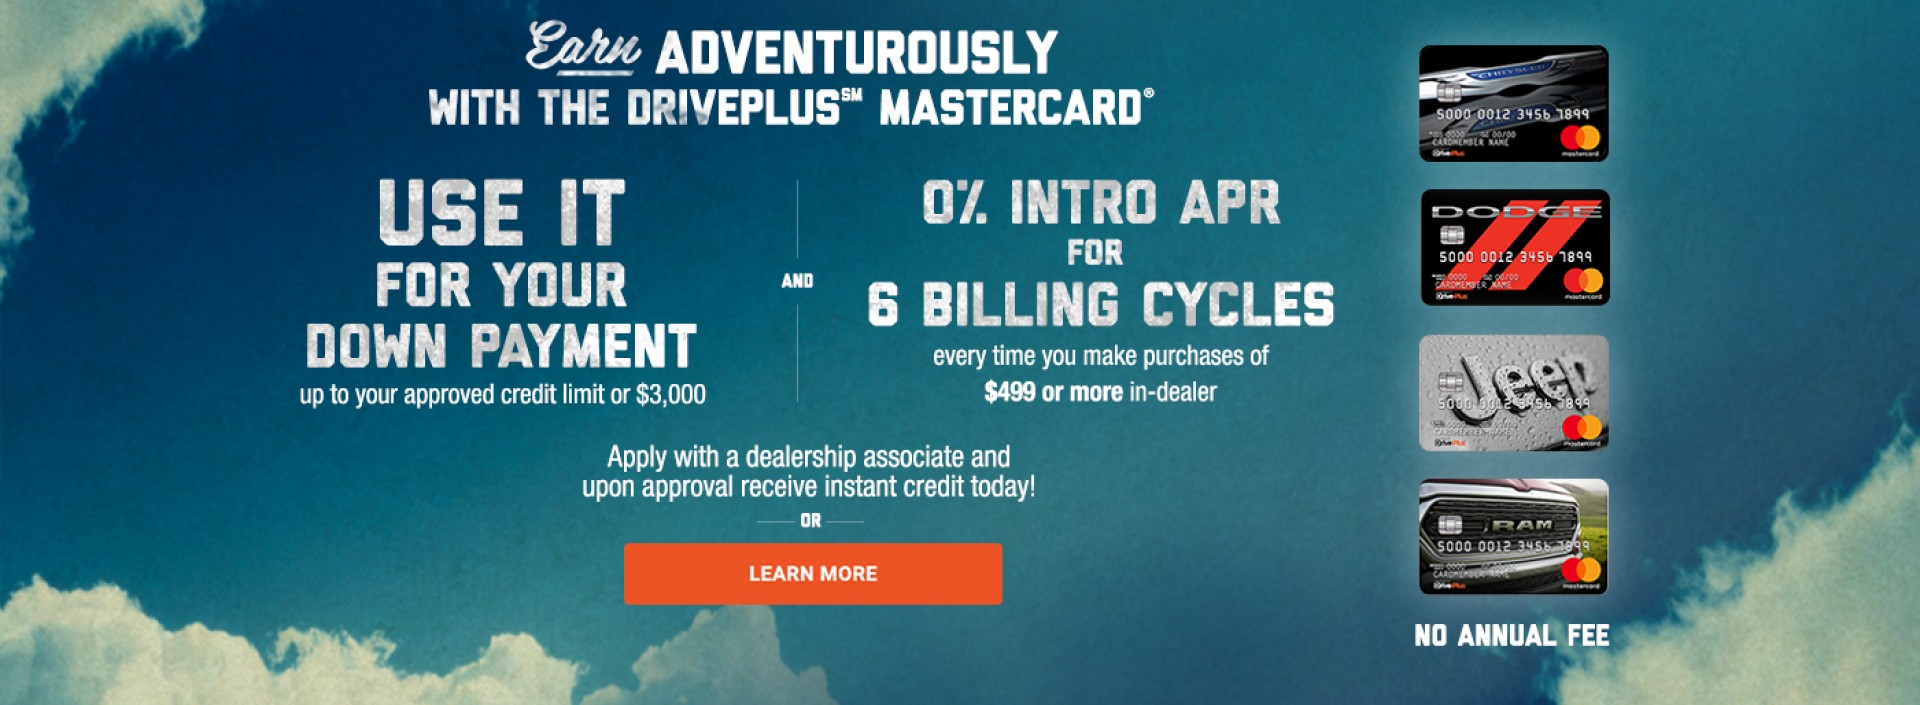 Earn Adventurously with the Driveplus Mastercard